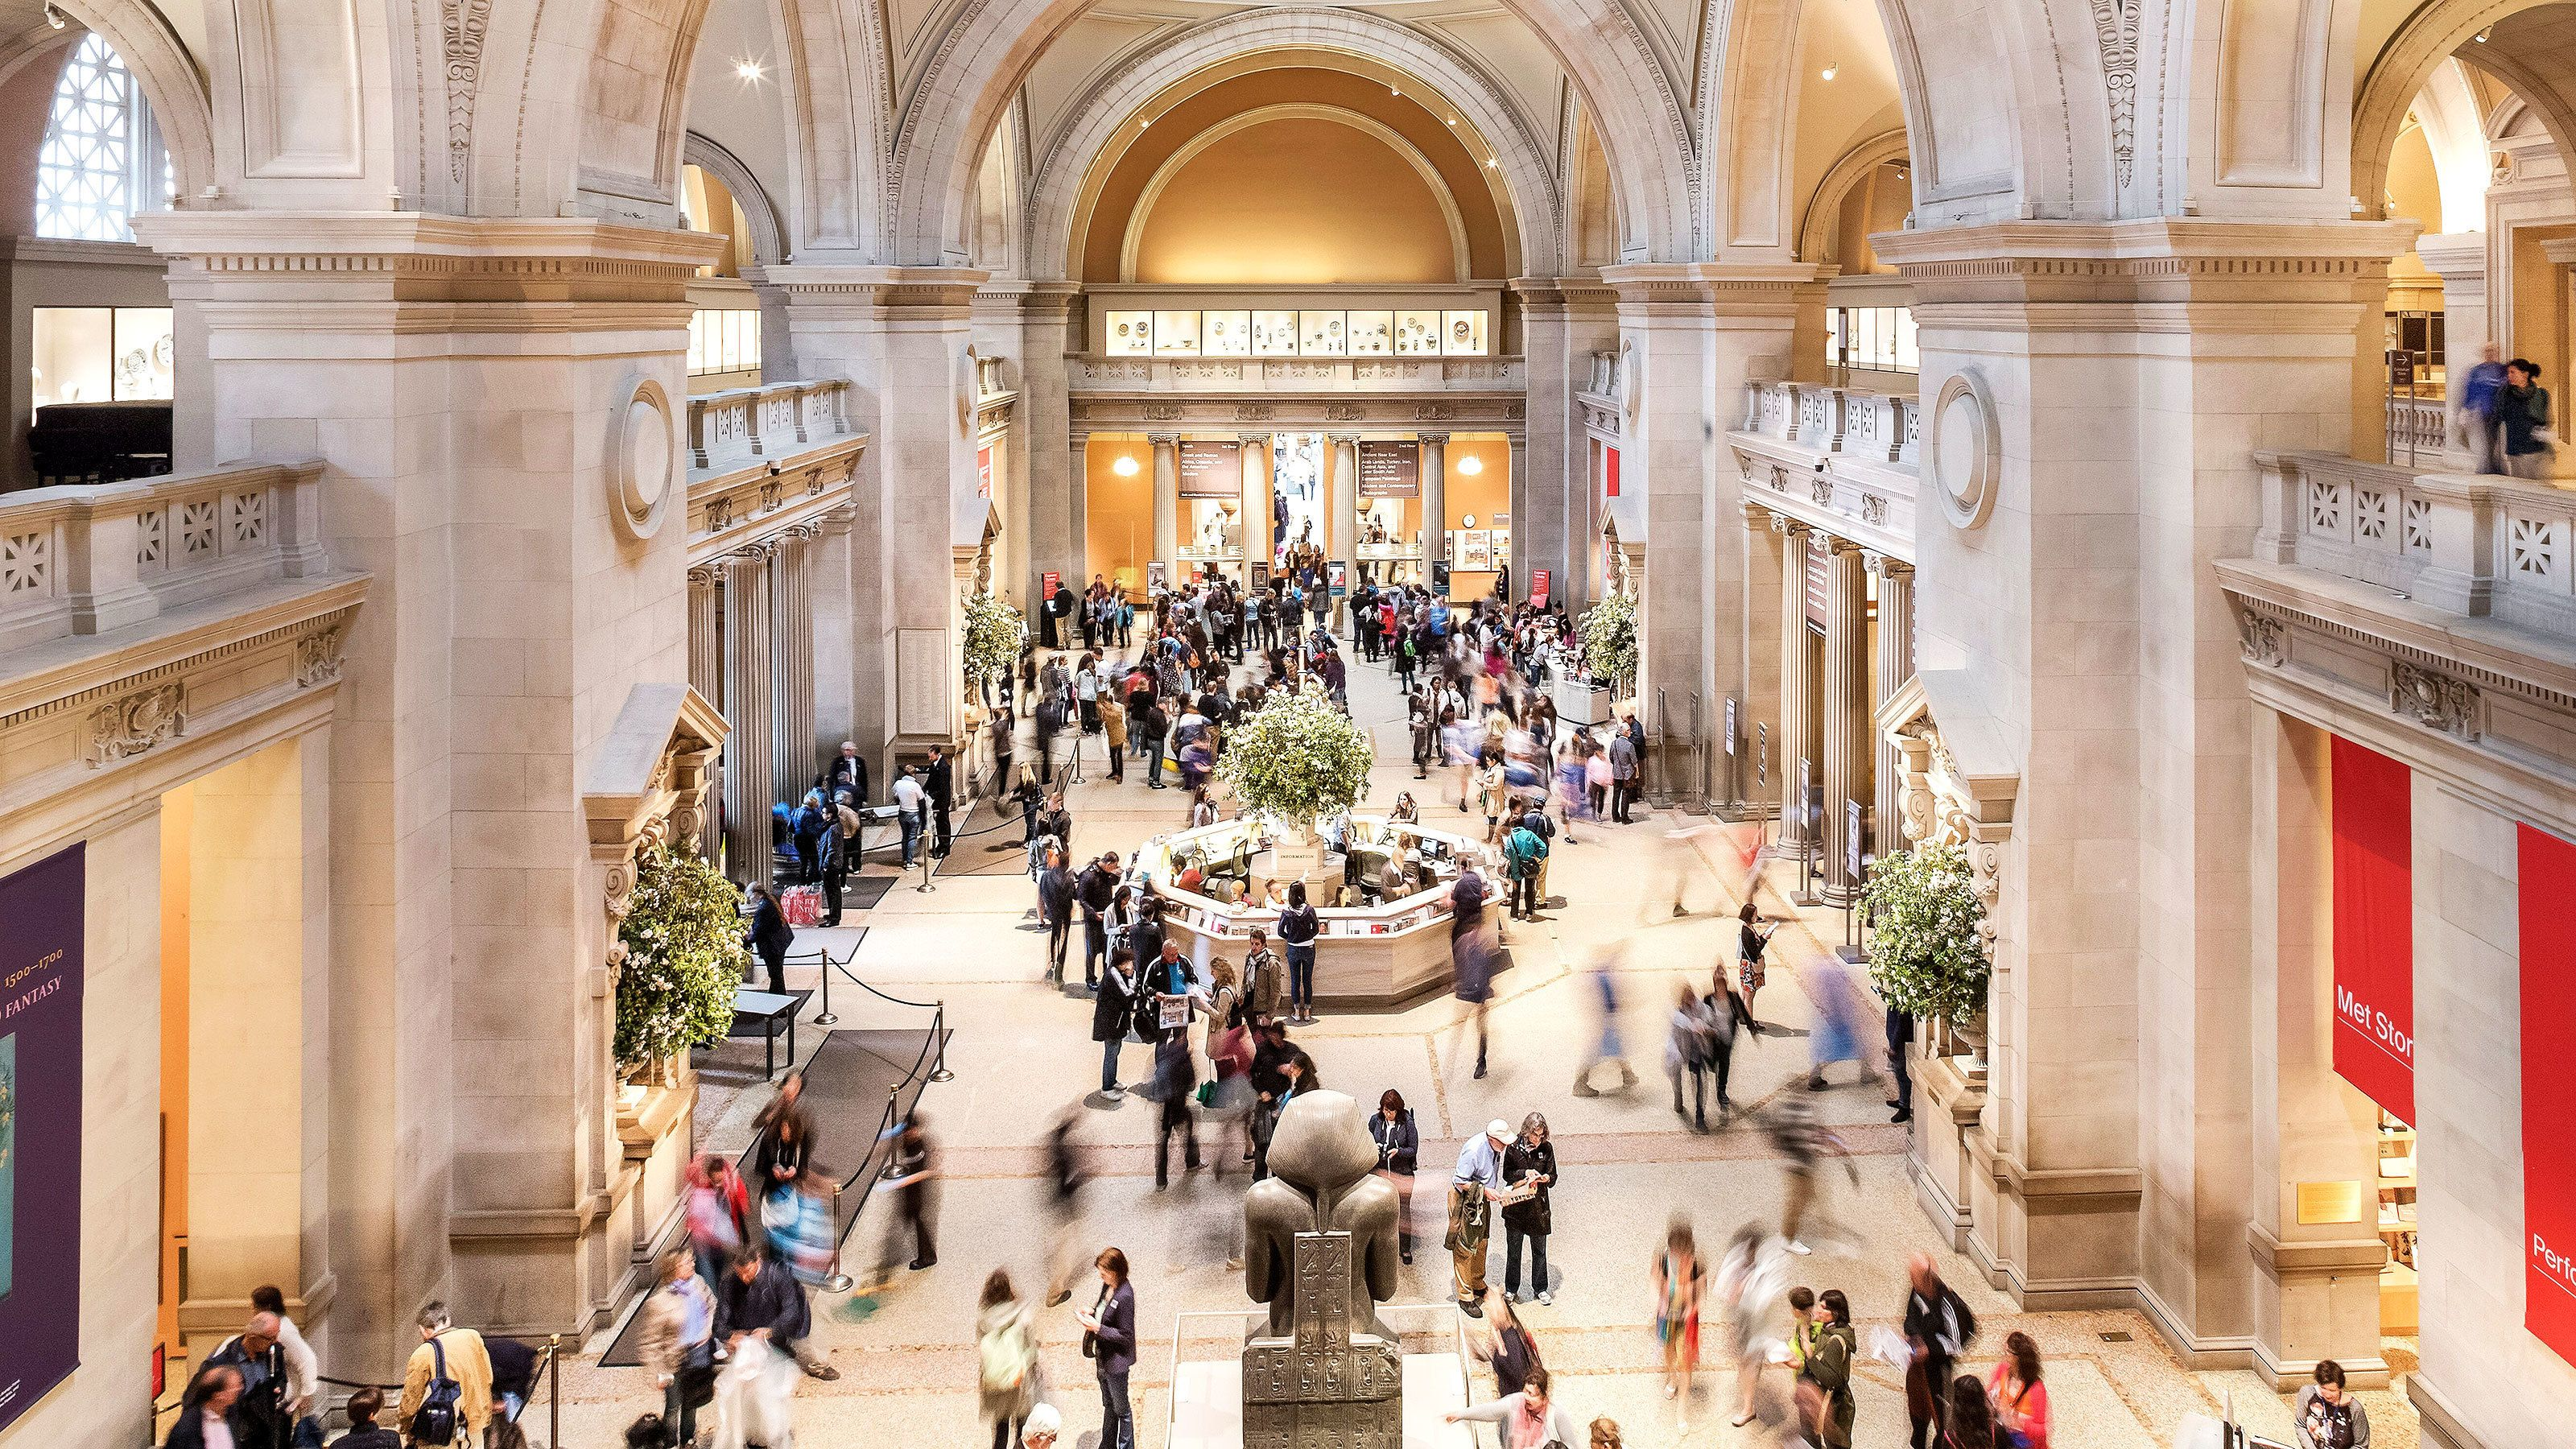 Tourist walking throughout the great hall in the Met in New York